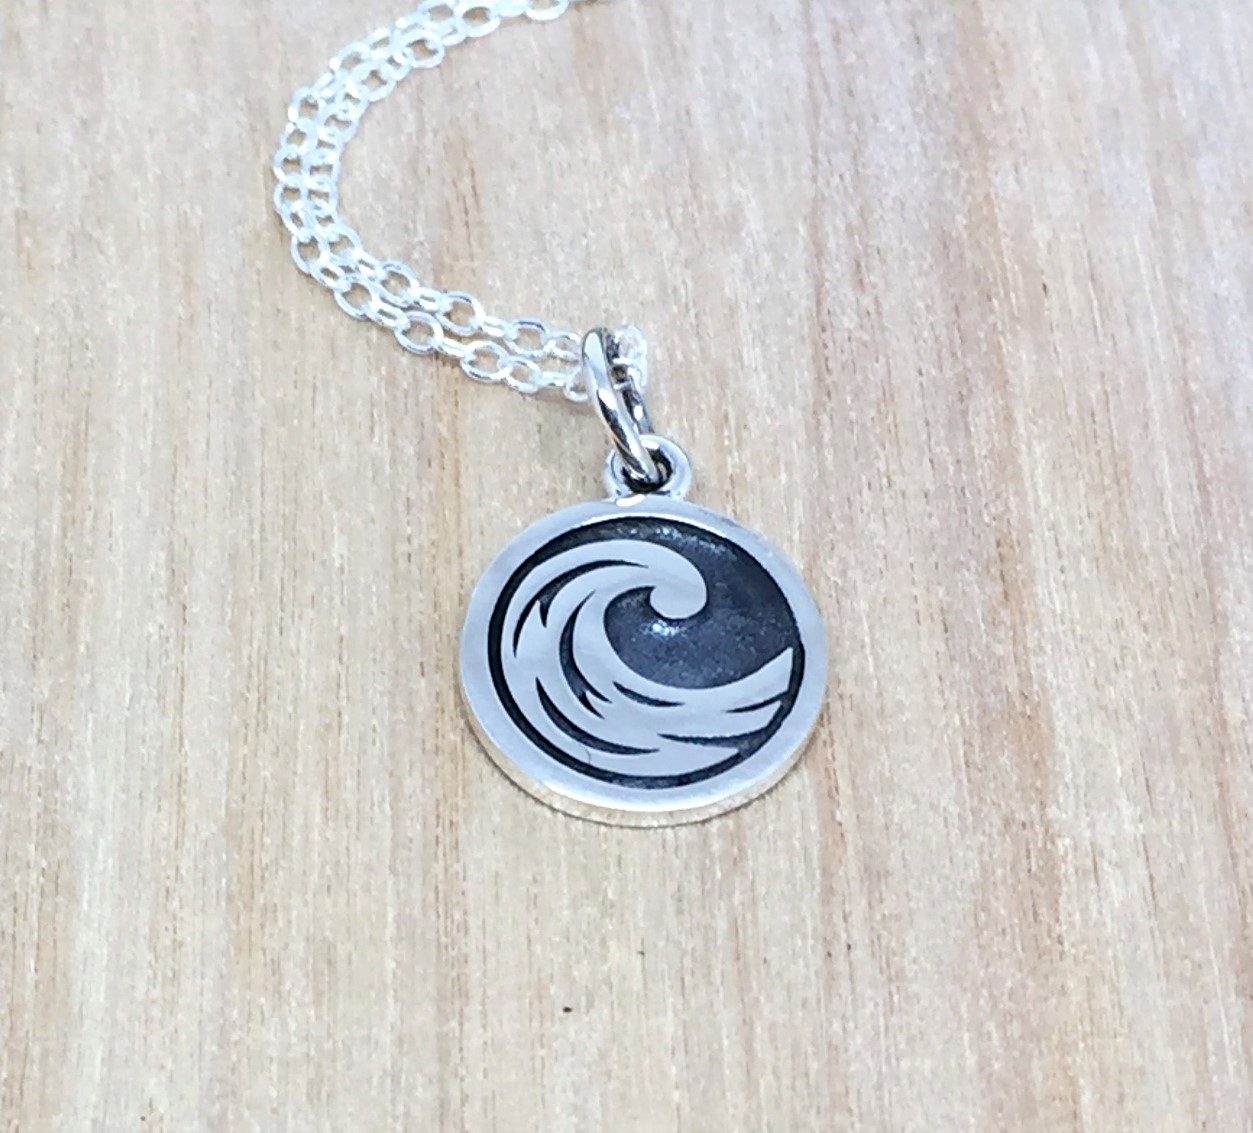 h2o necklace meaningful water necklace gift for surfers jewelry beach choker for swimmers Ocean Wave Necklace quote inspirational